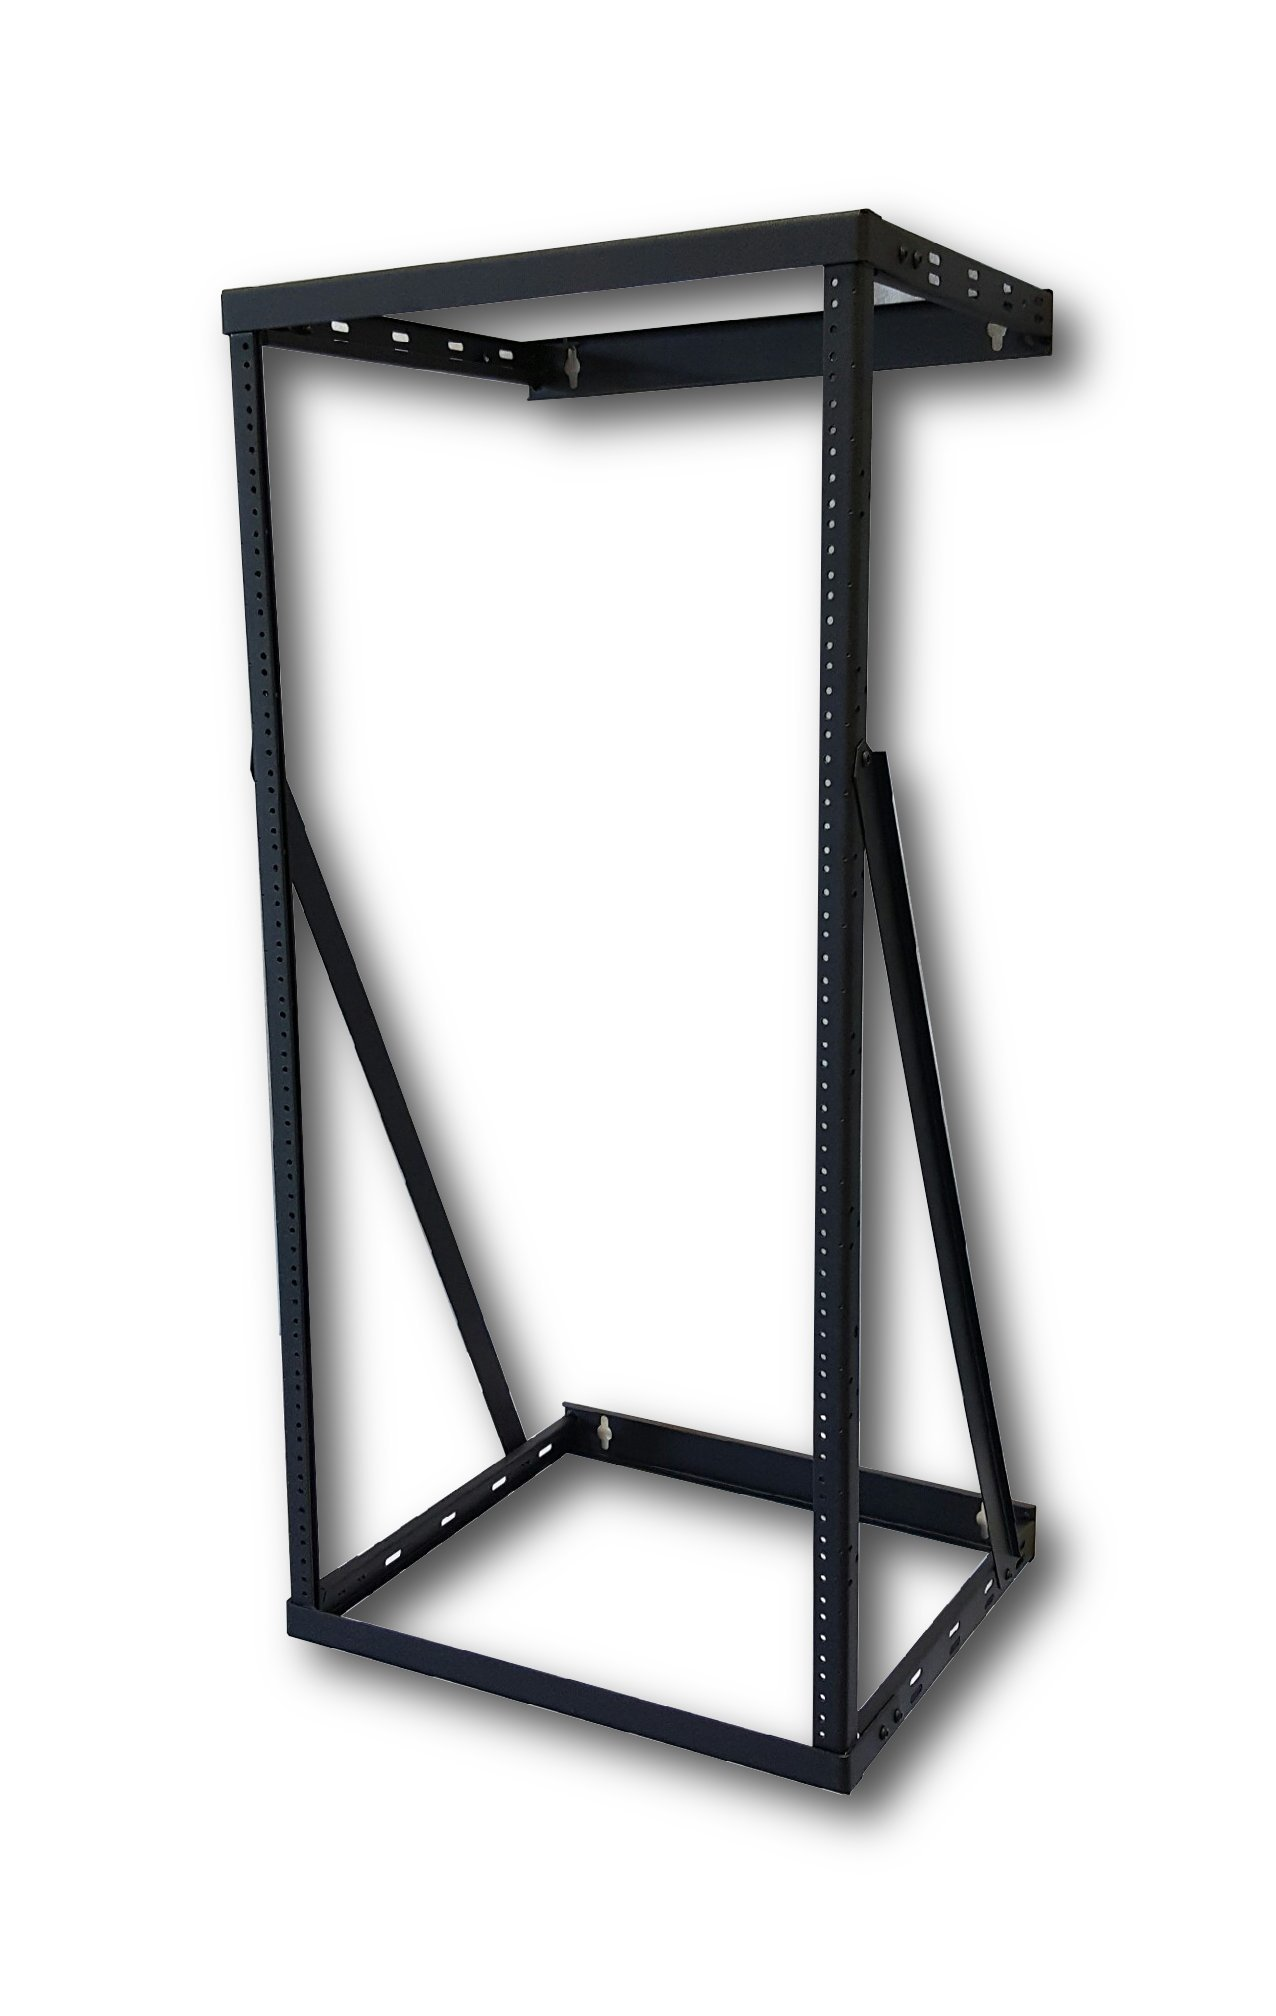 RMP Roserack Open 22U Wall Mount